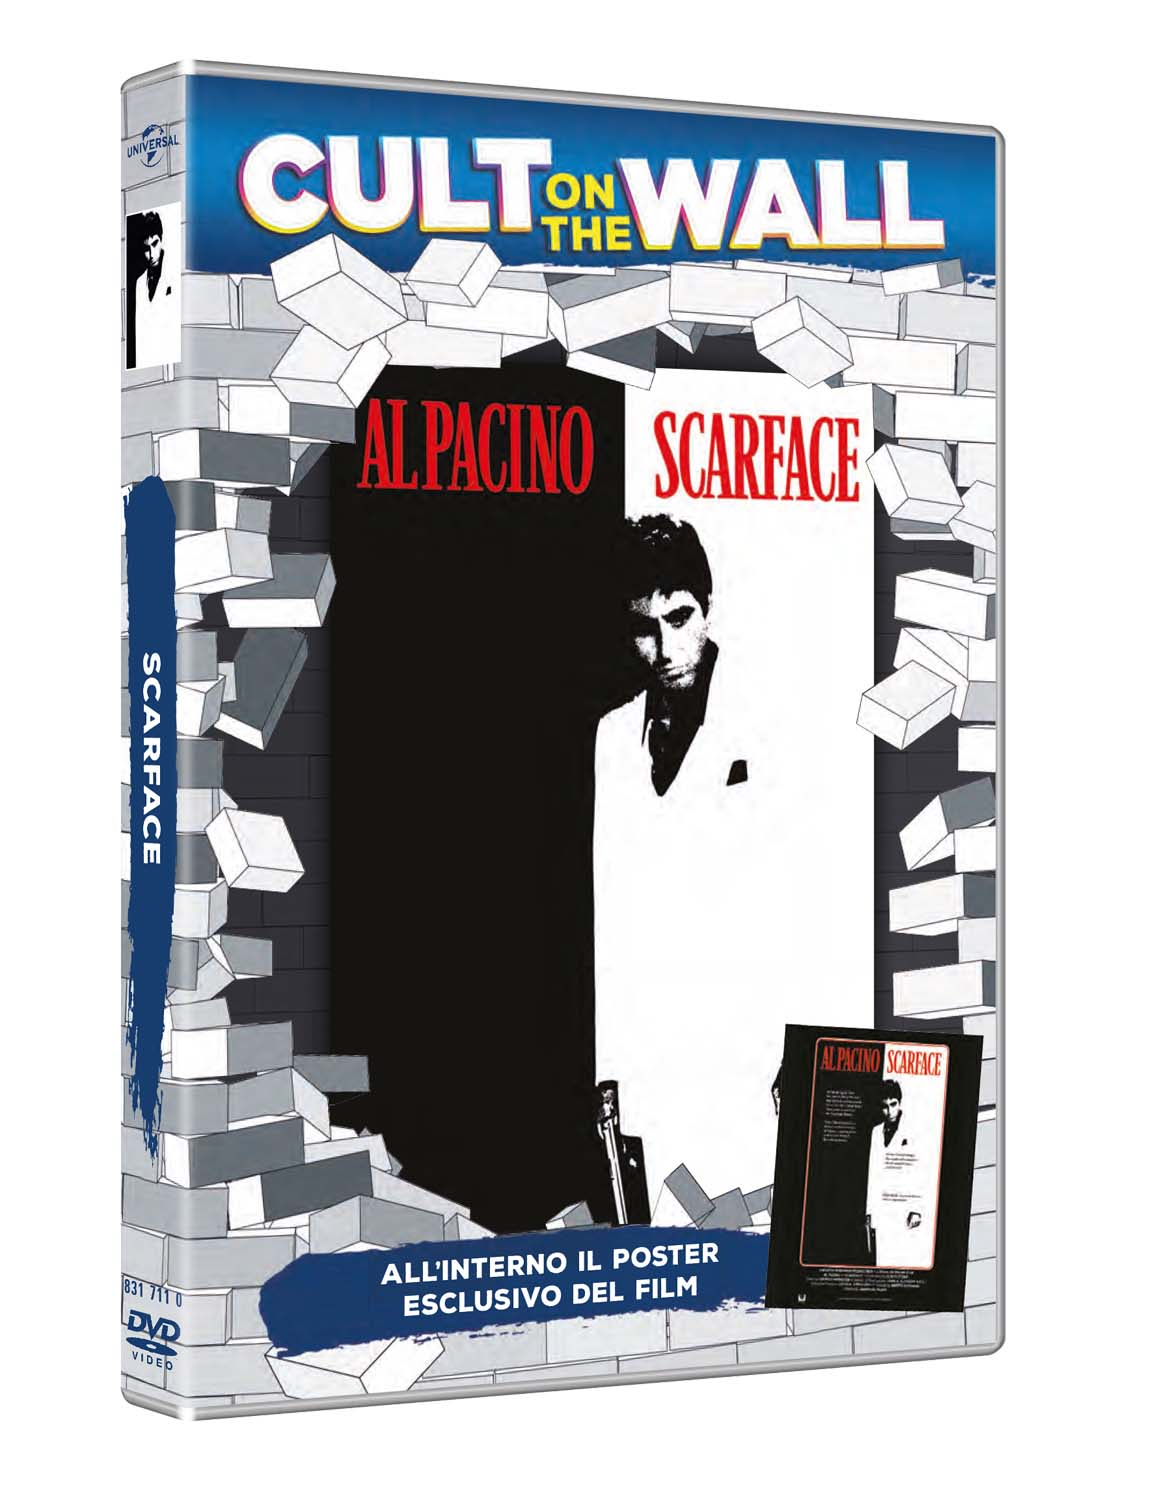 SCARFACE (CULT ON THE WALL) (DVD+POSTER) (DVD)